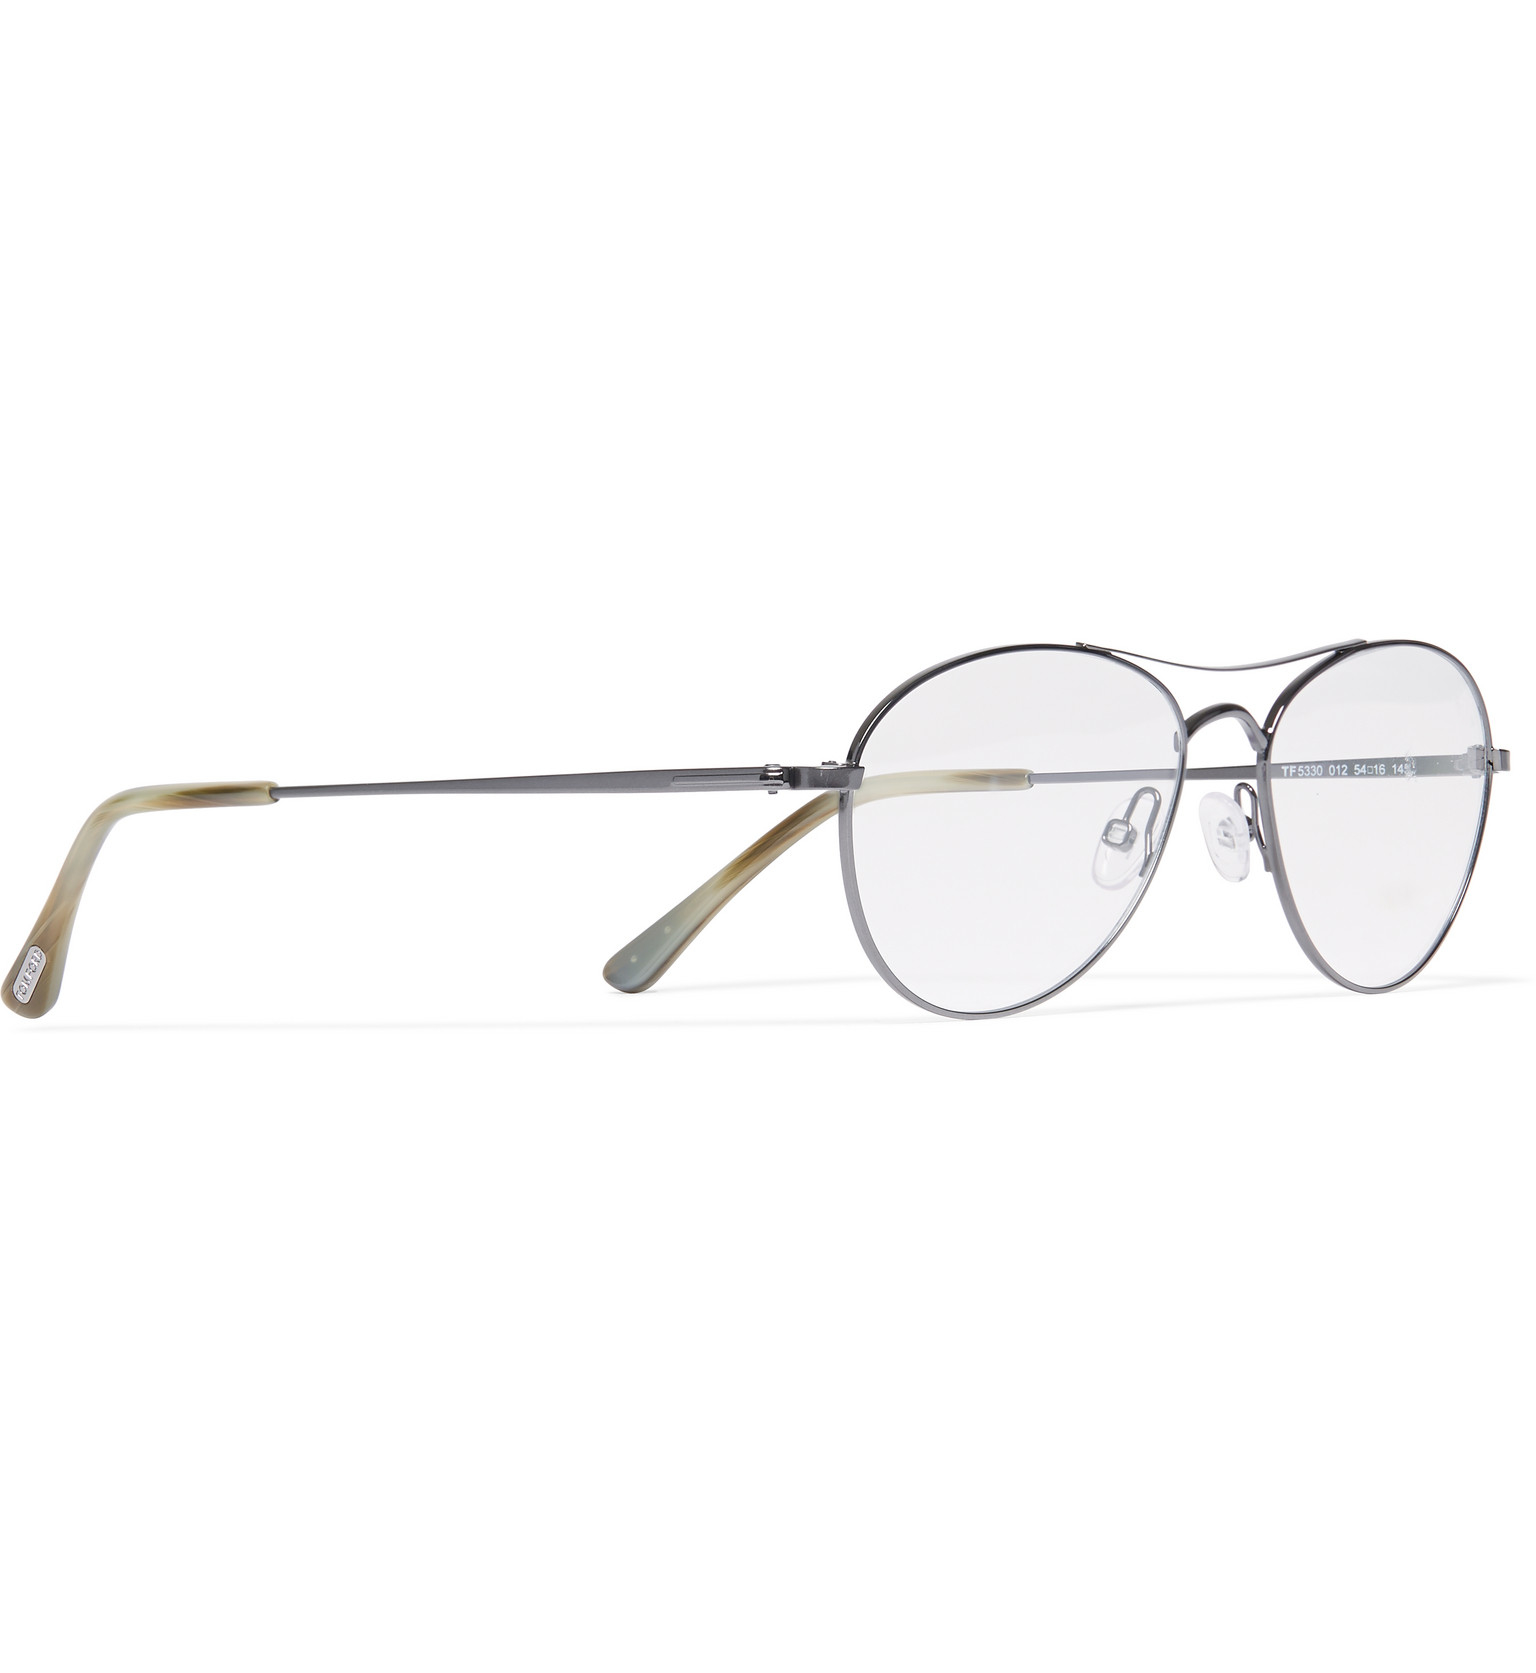 83bab4afea4 Tom Ford Aviator-style Metal Optical Glasses in Metallic for Men - Lyst